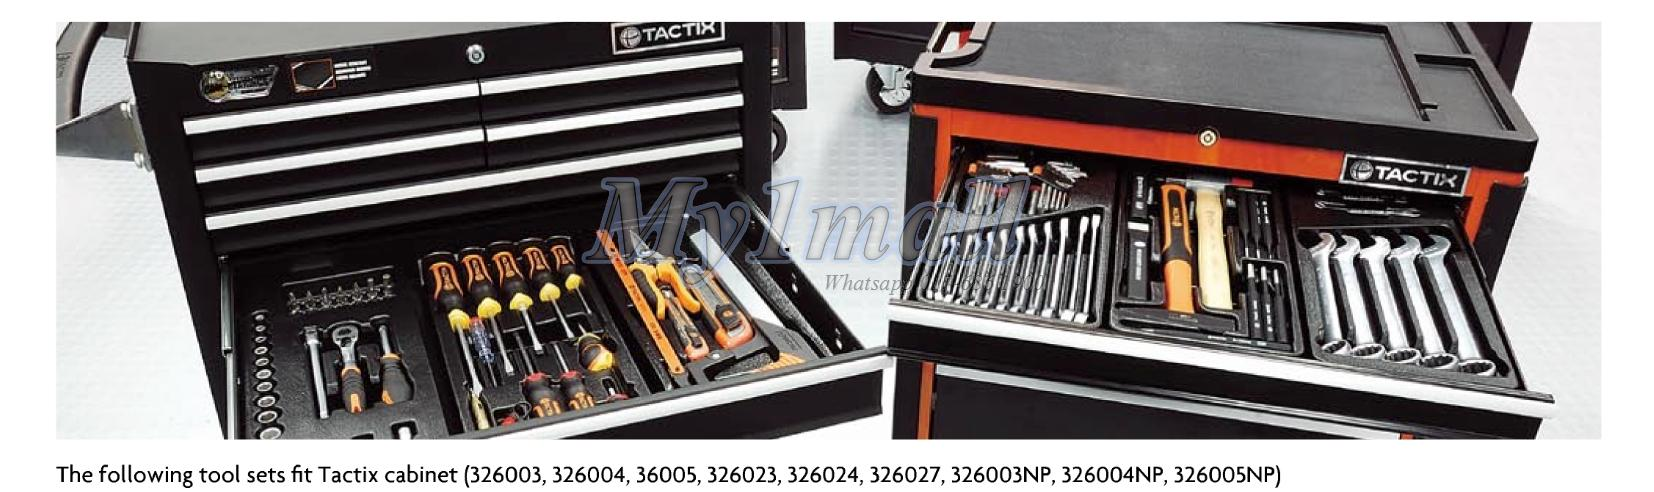 TACTIX 327511 TOOL SET 4PC